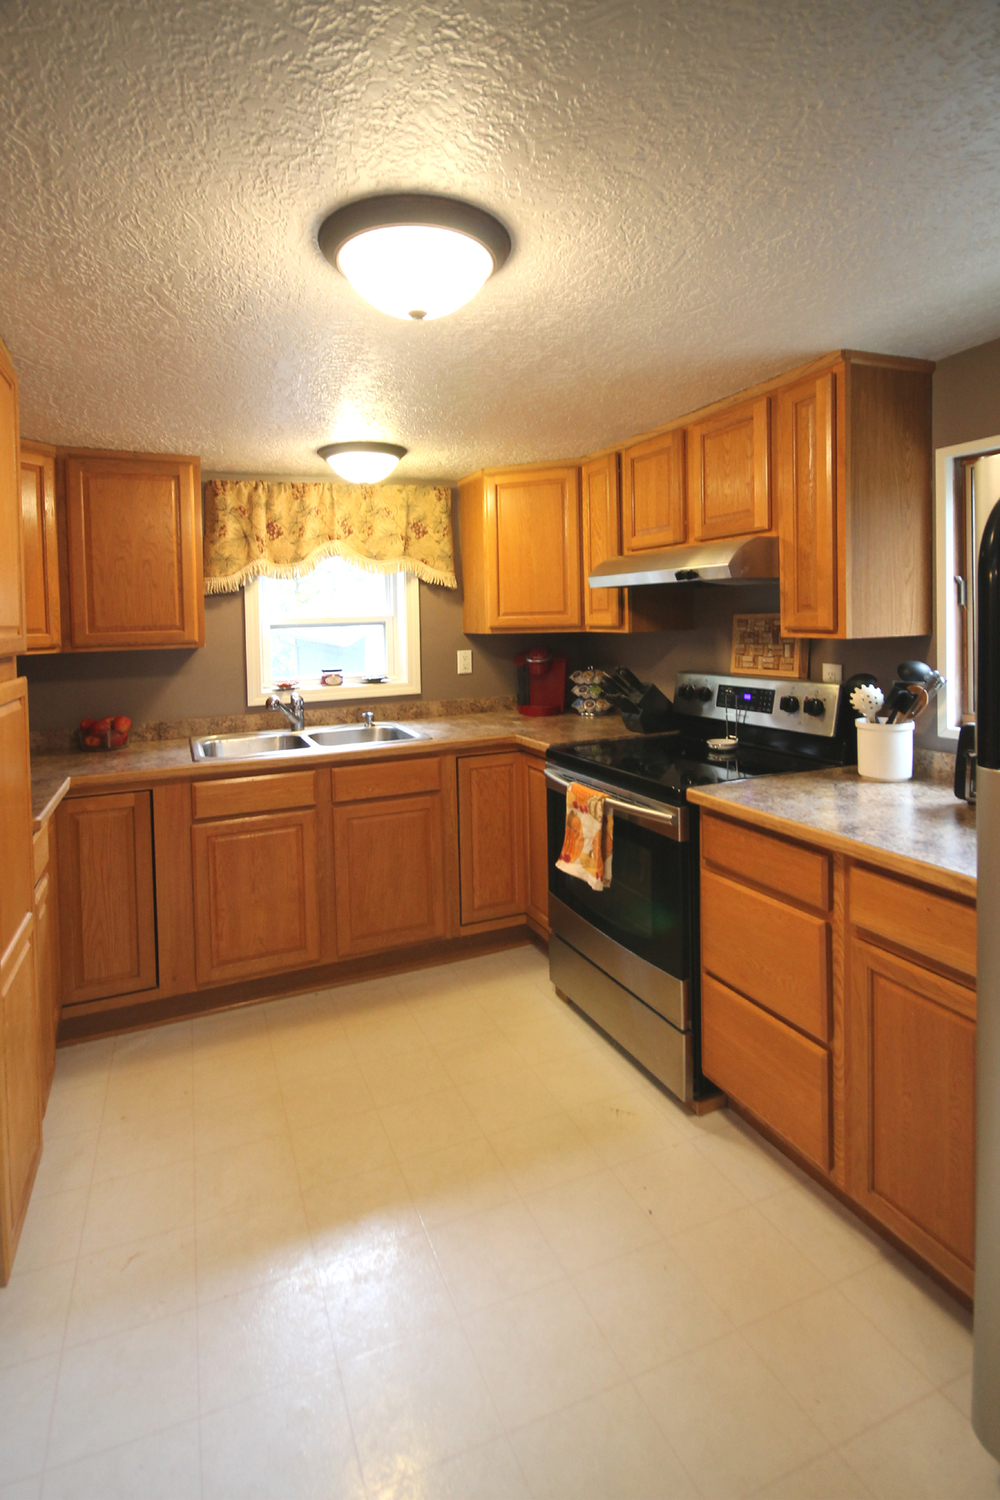 213-S.-Rogers-Kitchen.jpg